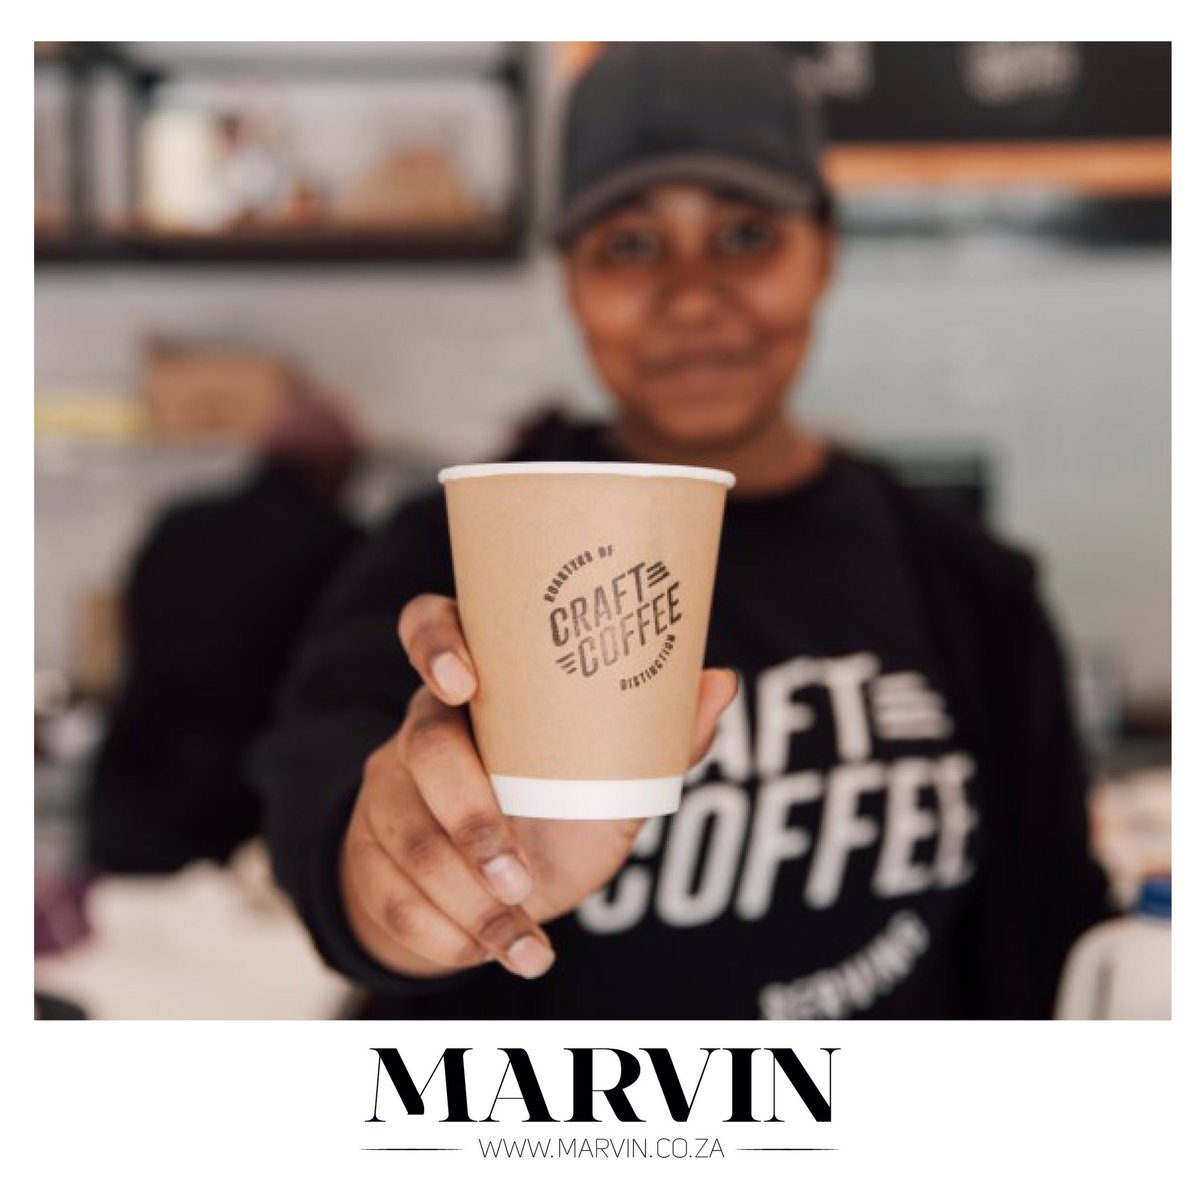 Coffee Rituals: Bean There Coffee — Visit Marvin to continue - http://www.marvin.co.za 📷 @harmonixent #coffee #obsession #lifestyle #love #design #iammarvin #table #chair #coffeeshop #johannesburg #southafrica #africa